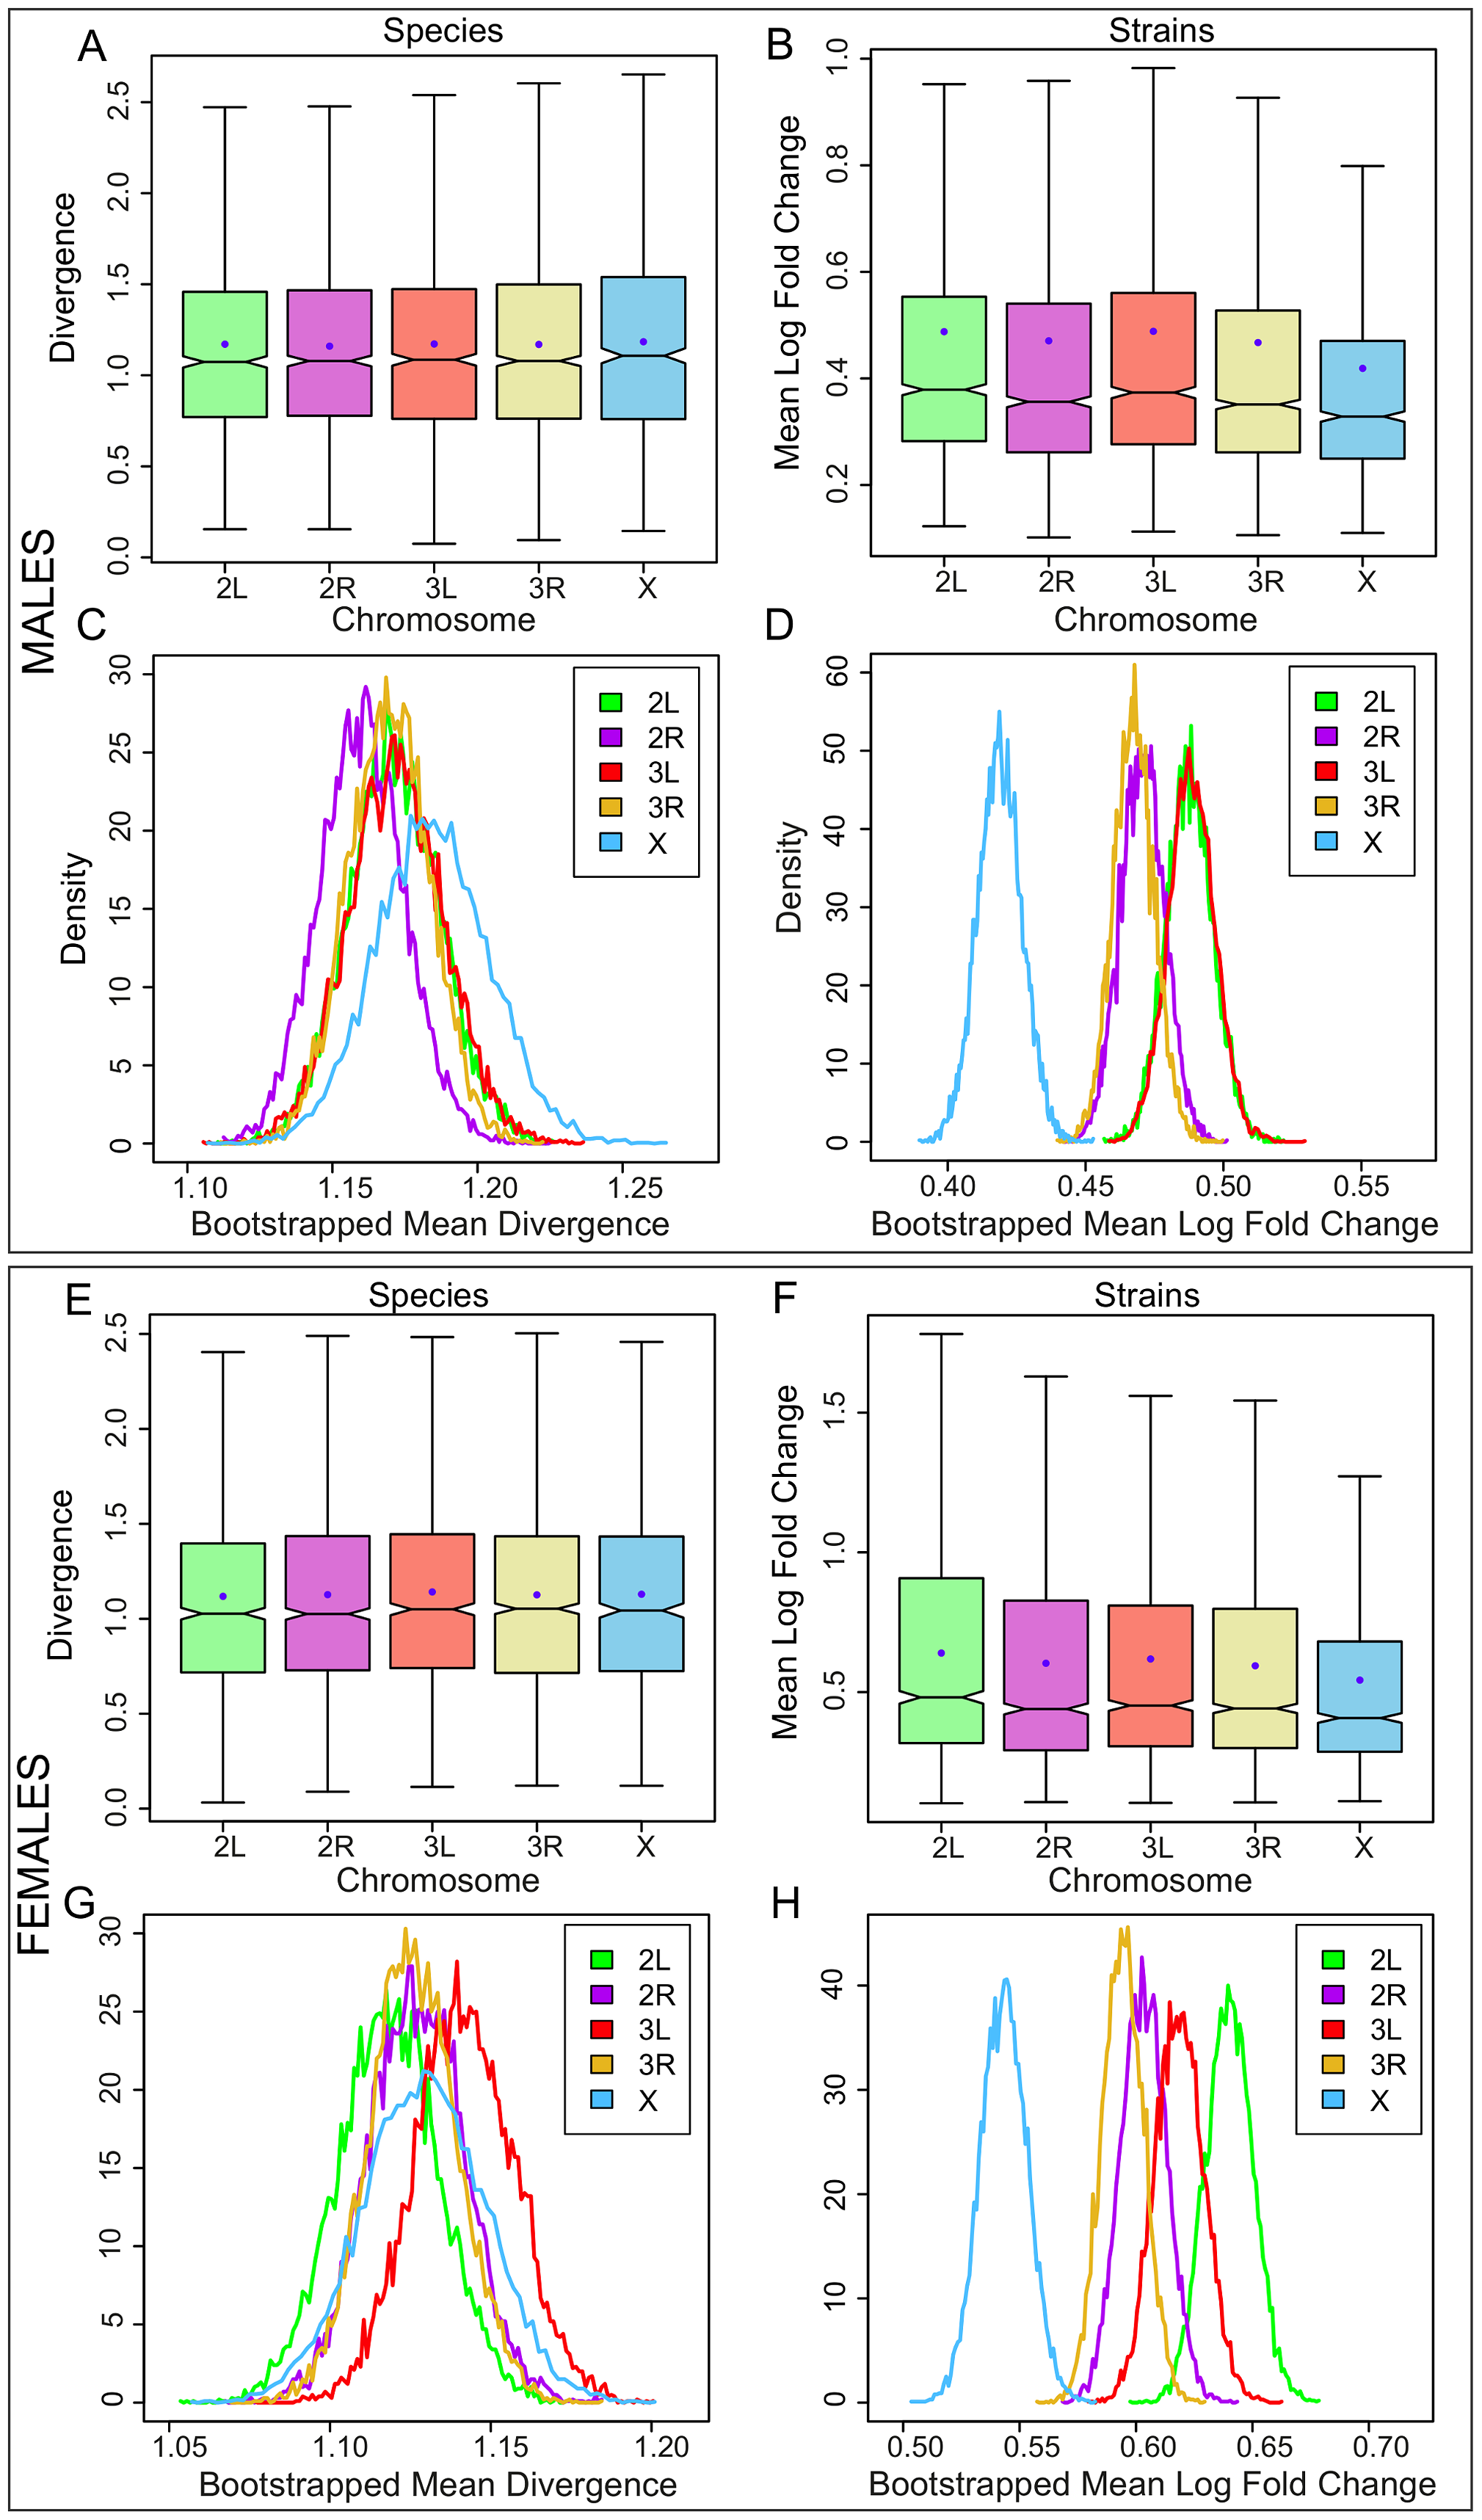 Gene expression divergence is not higher on the X chromosome in <i>Drosophila</i> adults but is lower in <i>D. melanogaster</i> adult strains.